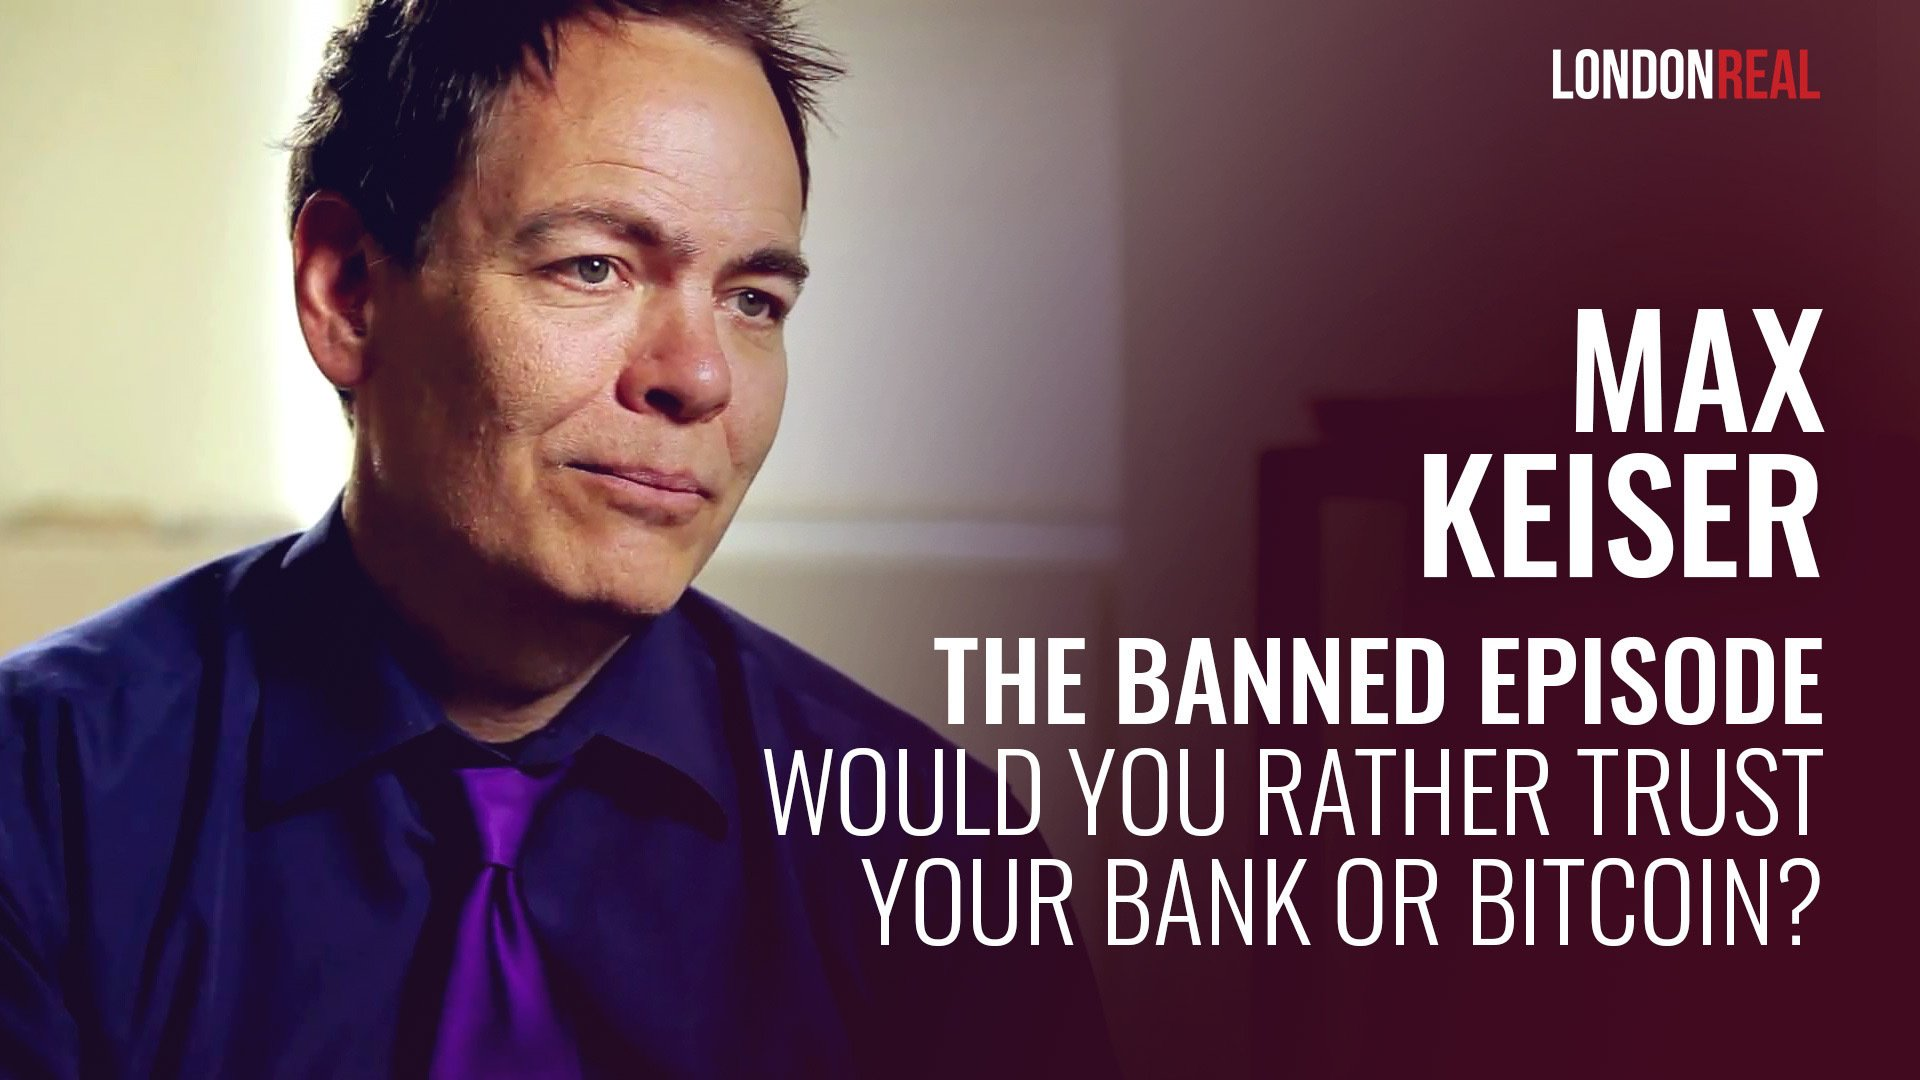 Max Keiser - The Banned Episode: Would You Rather Trust Your Bank or Bitcoin